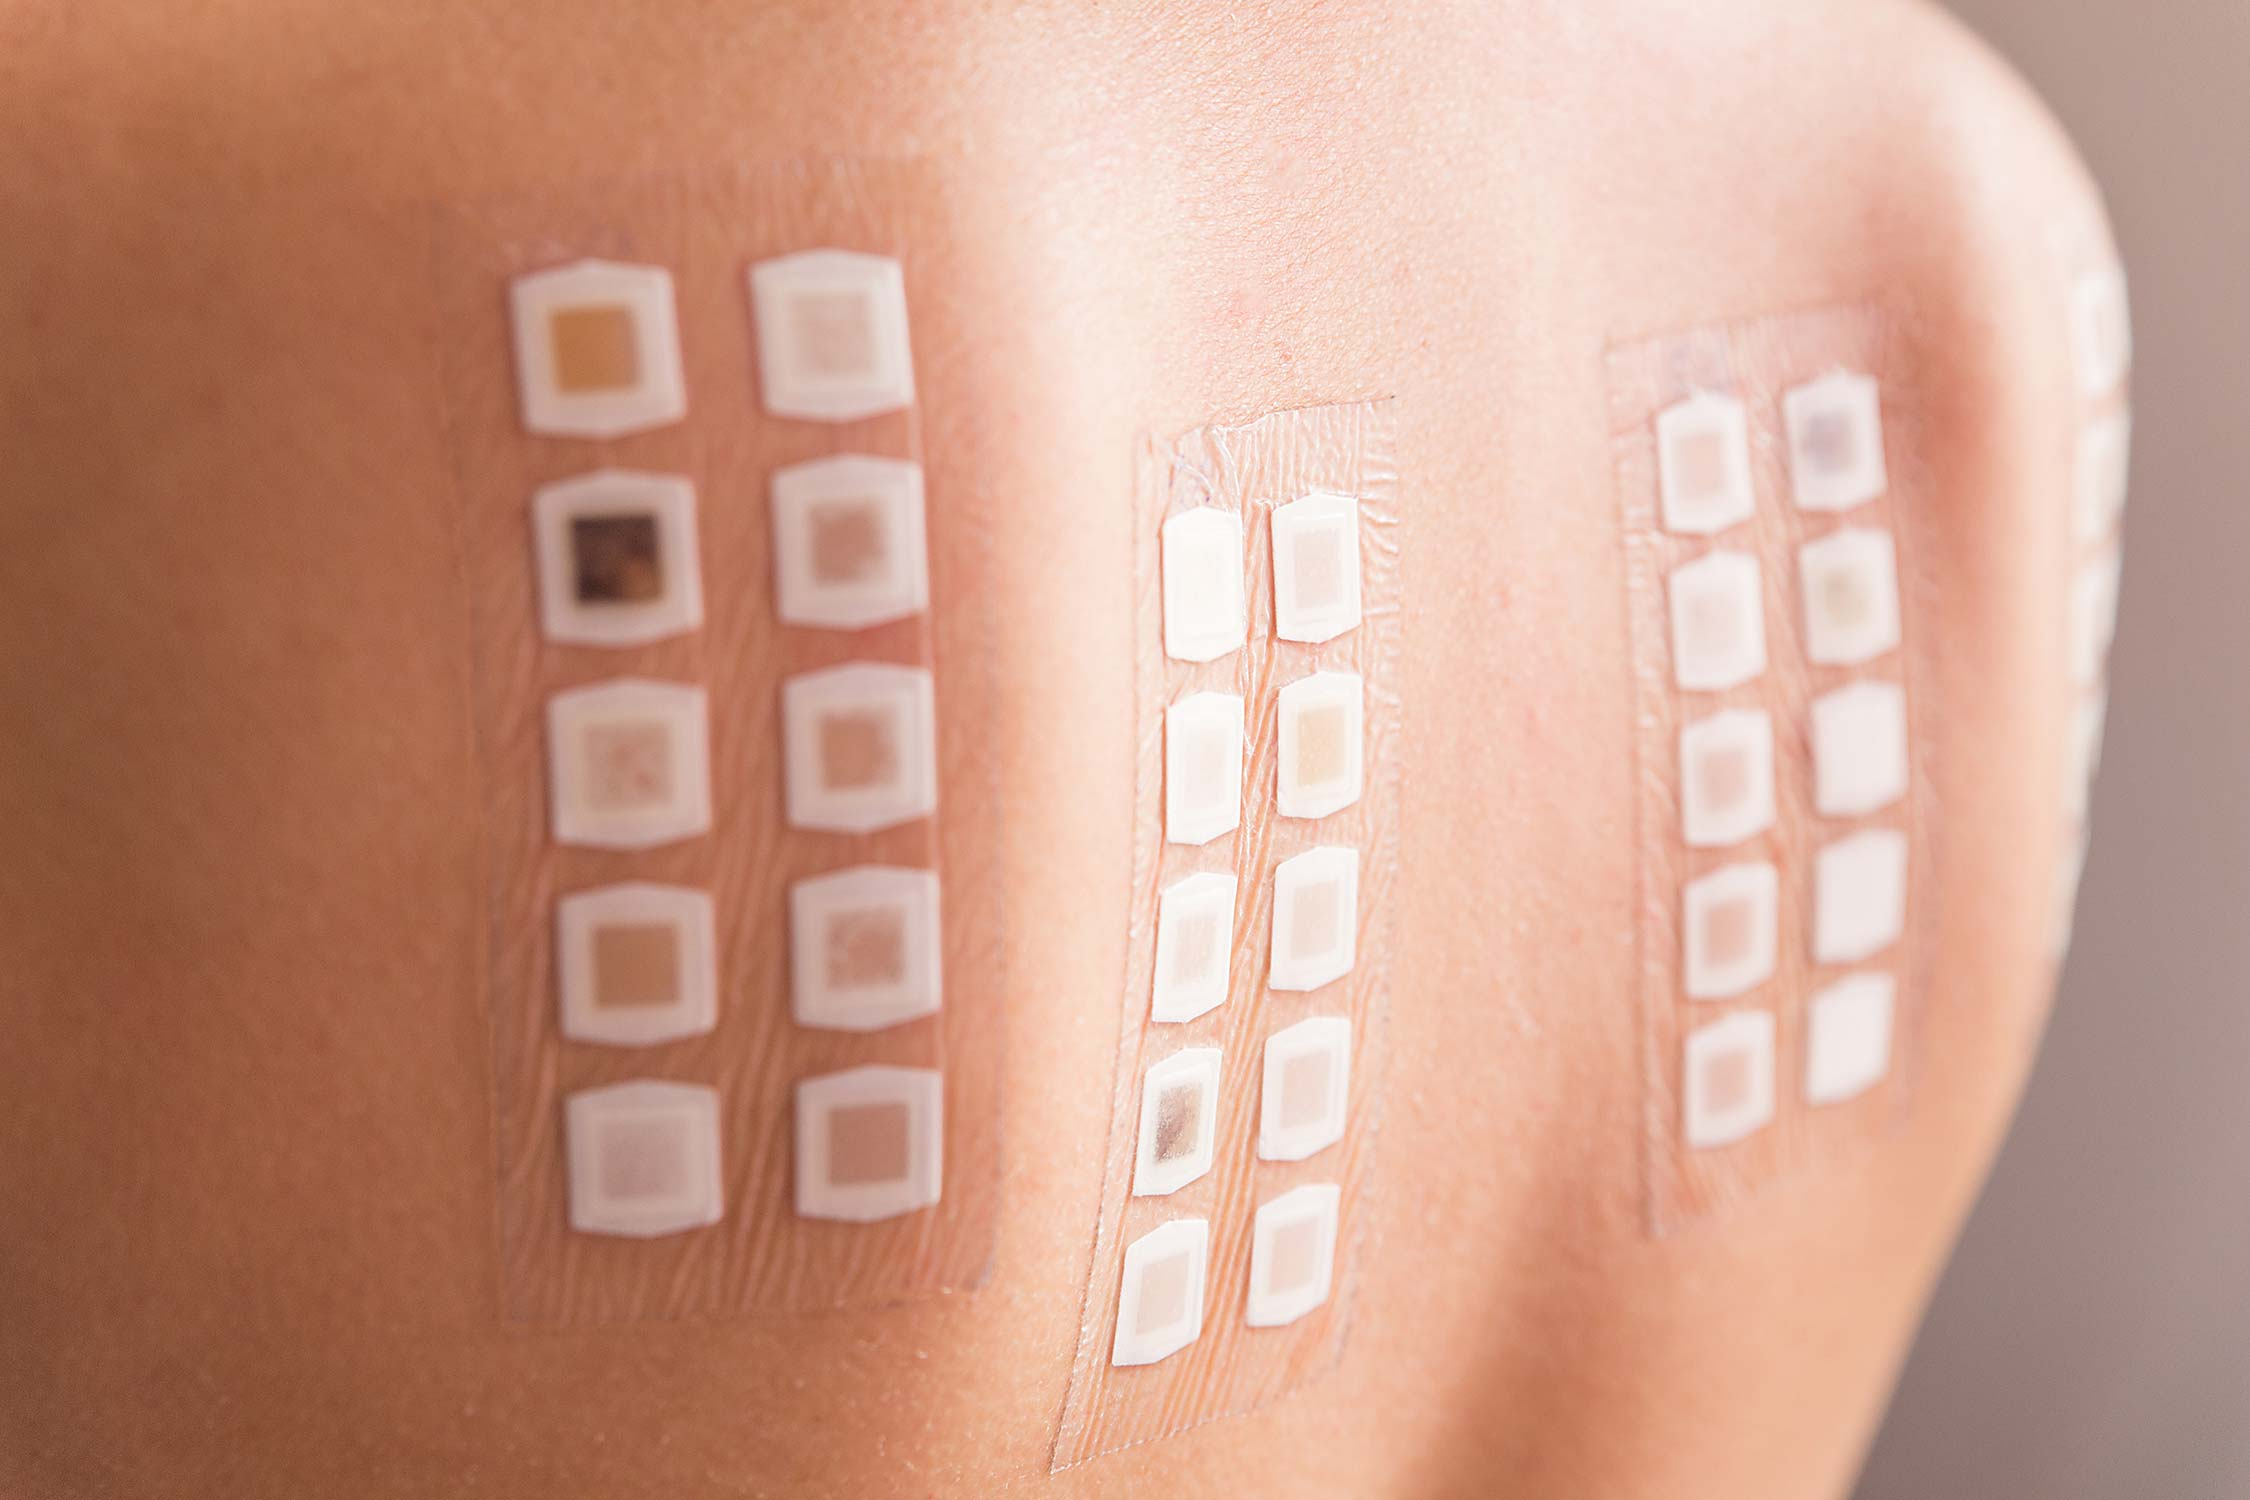 Contact dermatitis test patches on patient's upper back